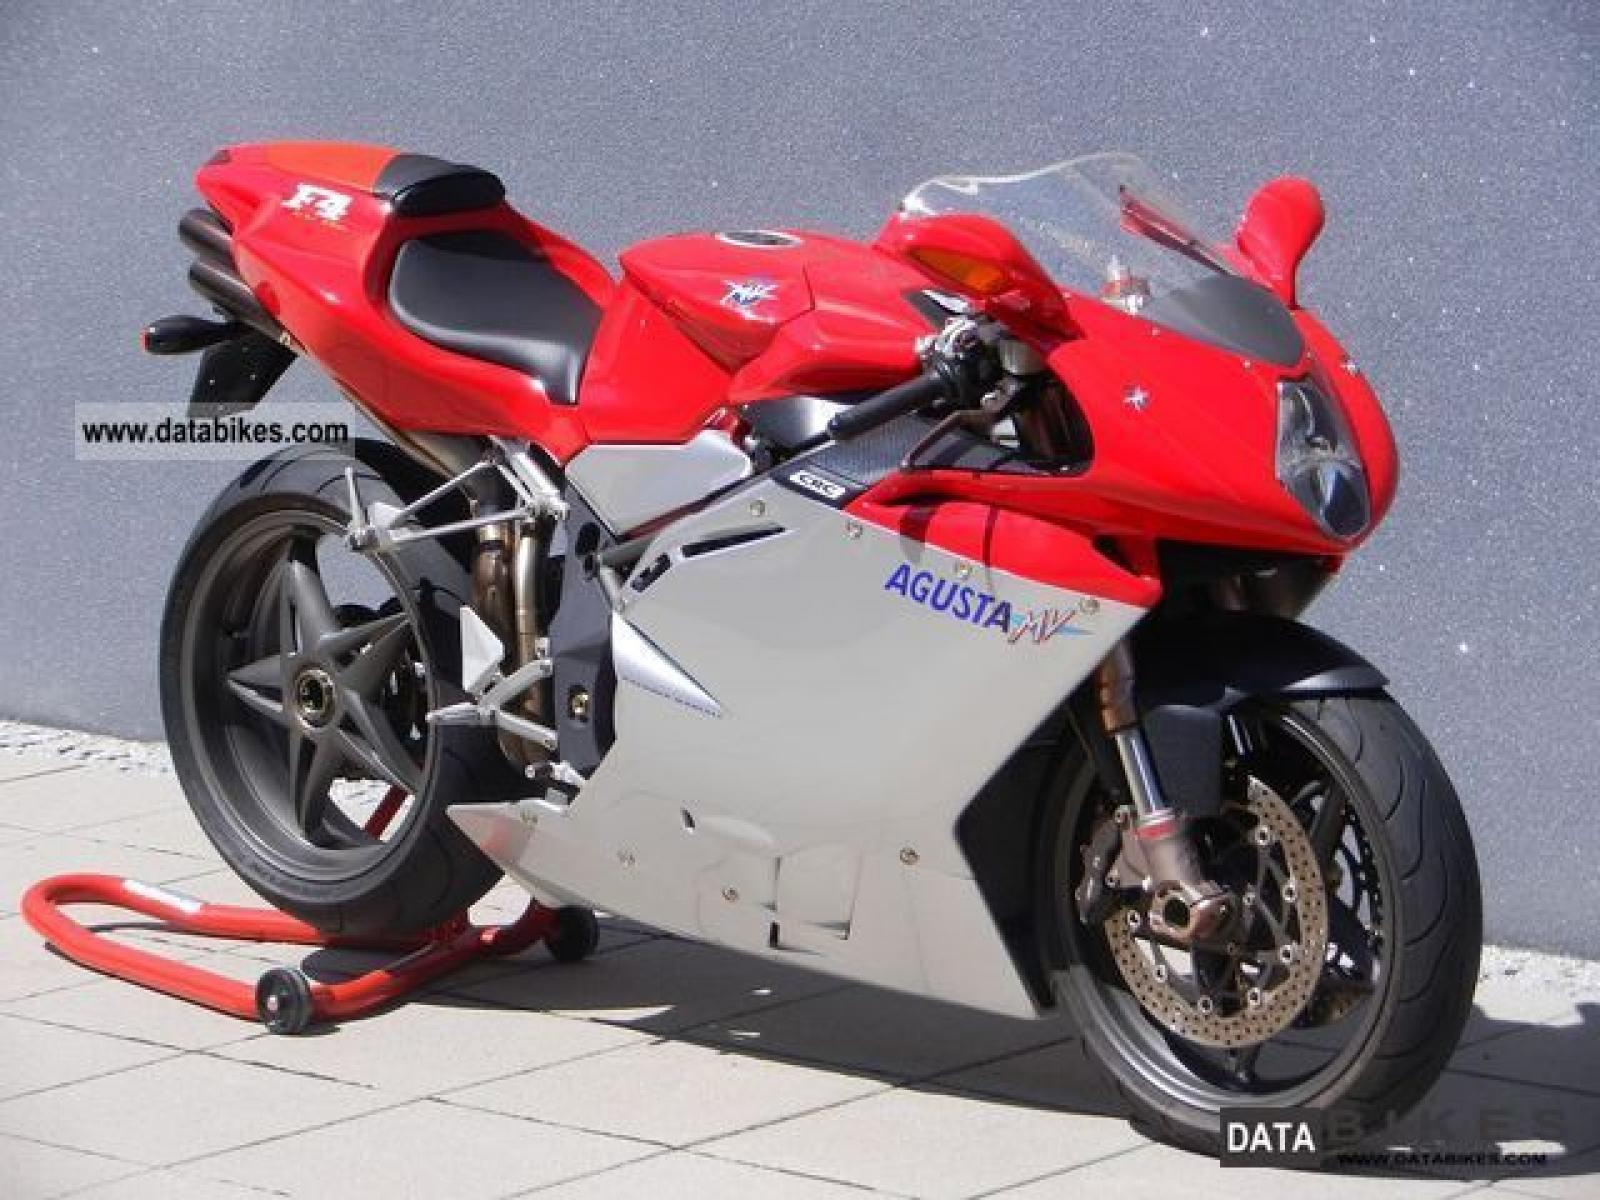 MV Agusta F4 S 1+1 2004 images #113663